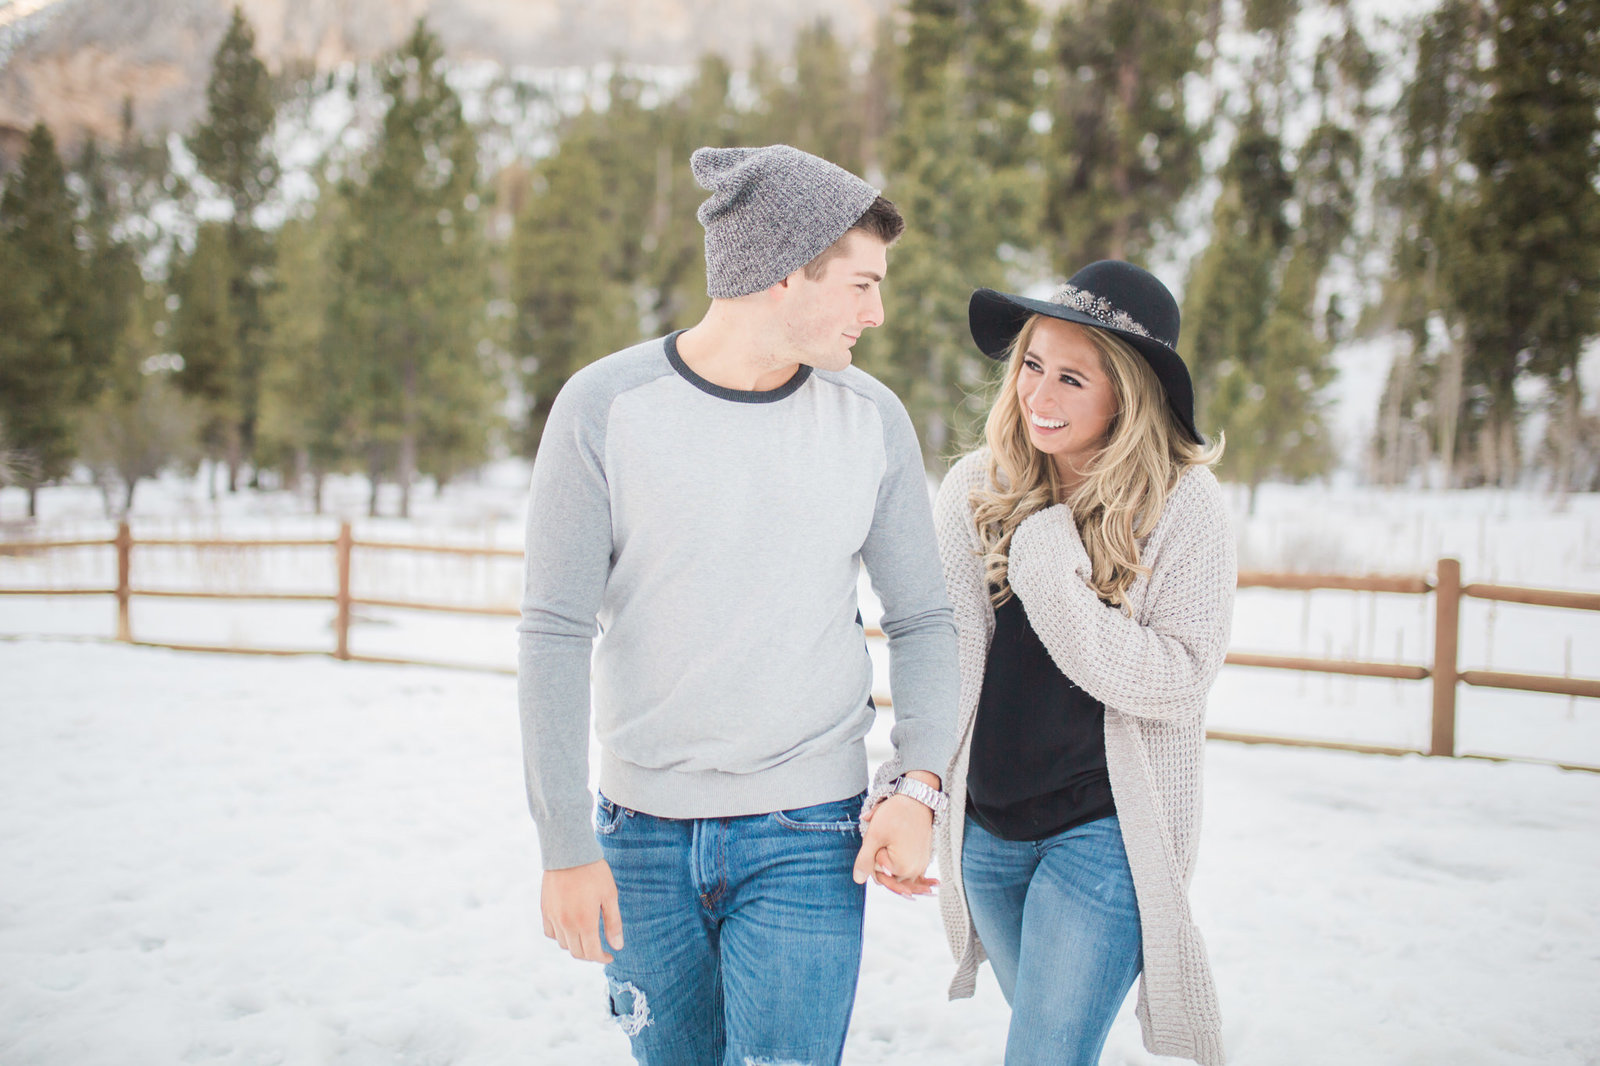 mt-charleston-las-vegas-winter-snowy-engagement-4